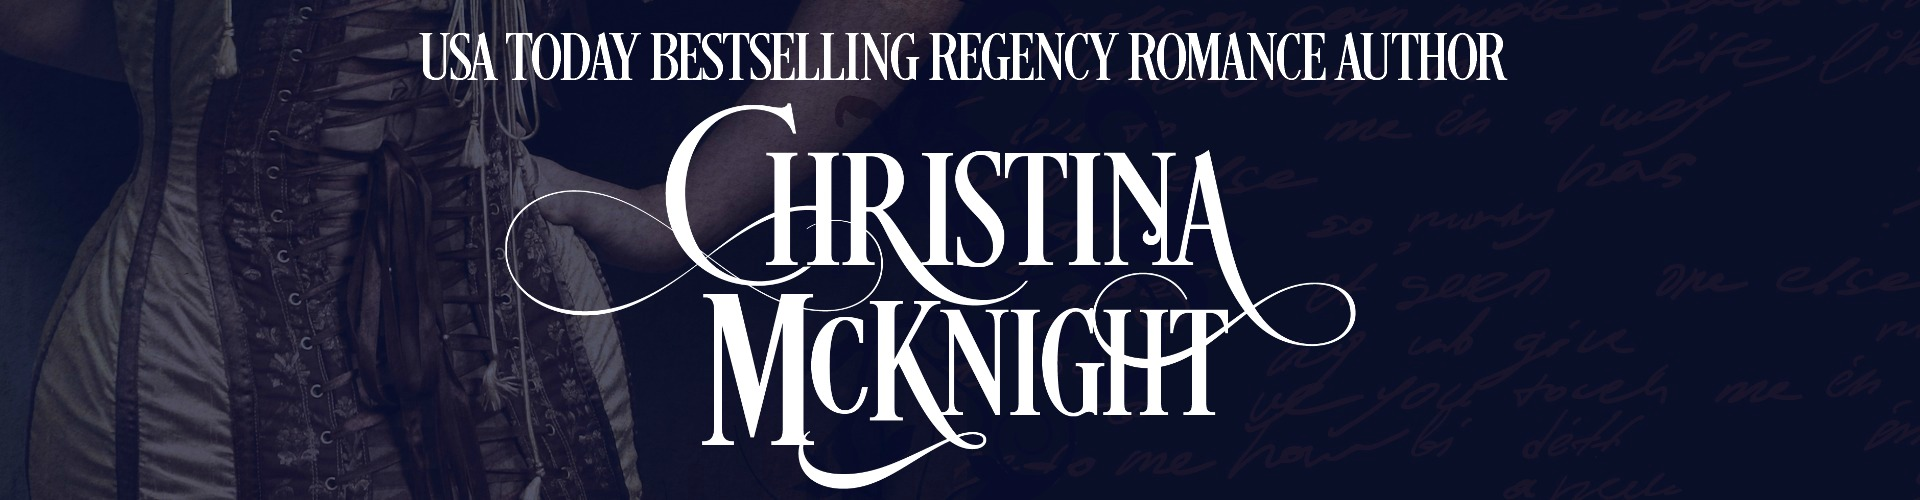 USA Today Bestselling Regency Romance Author Christina McKnight